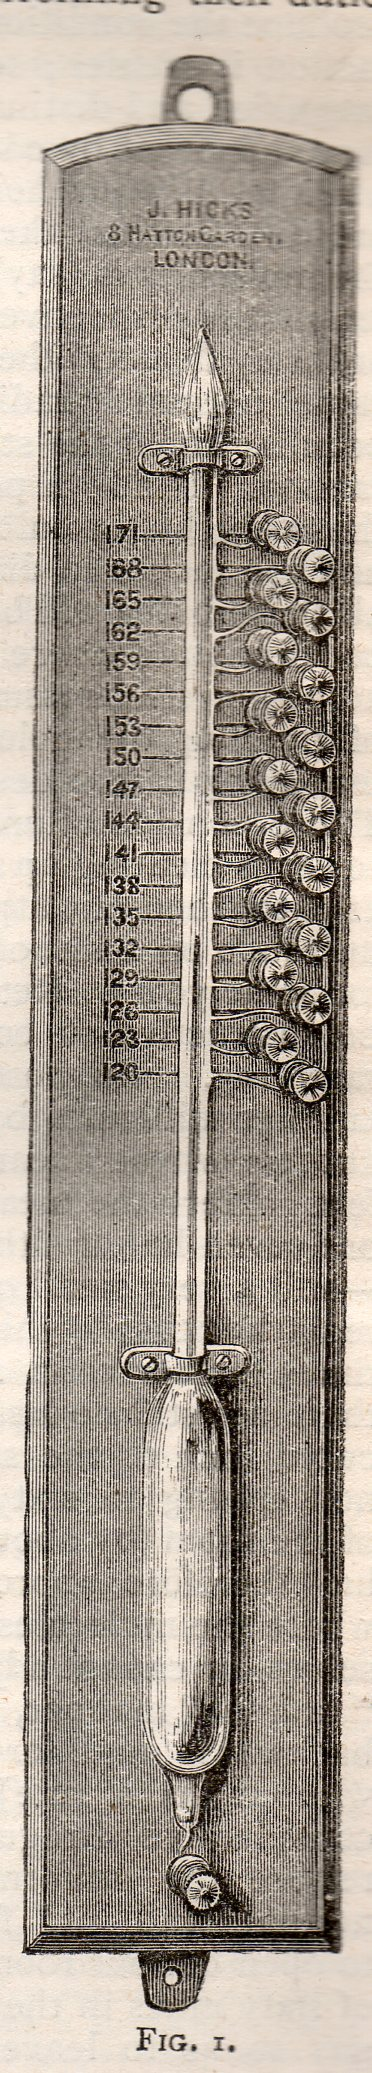 Electrical thermometer072